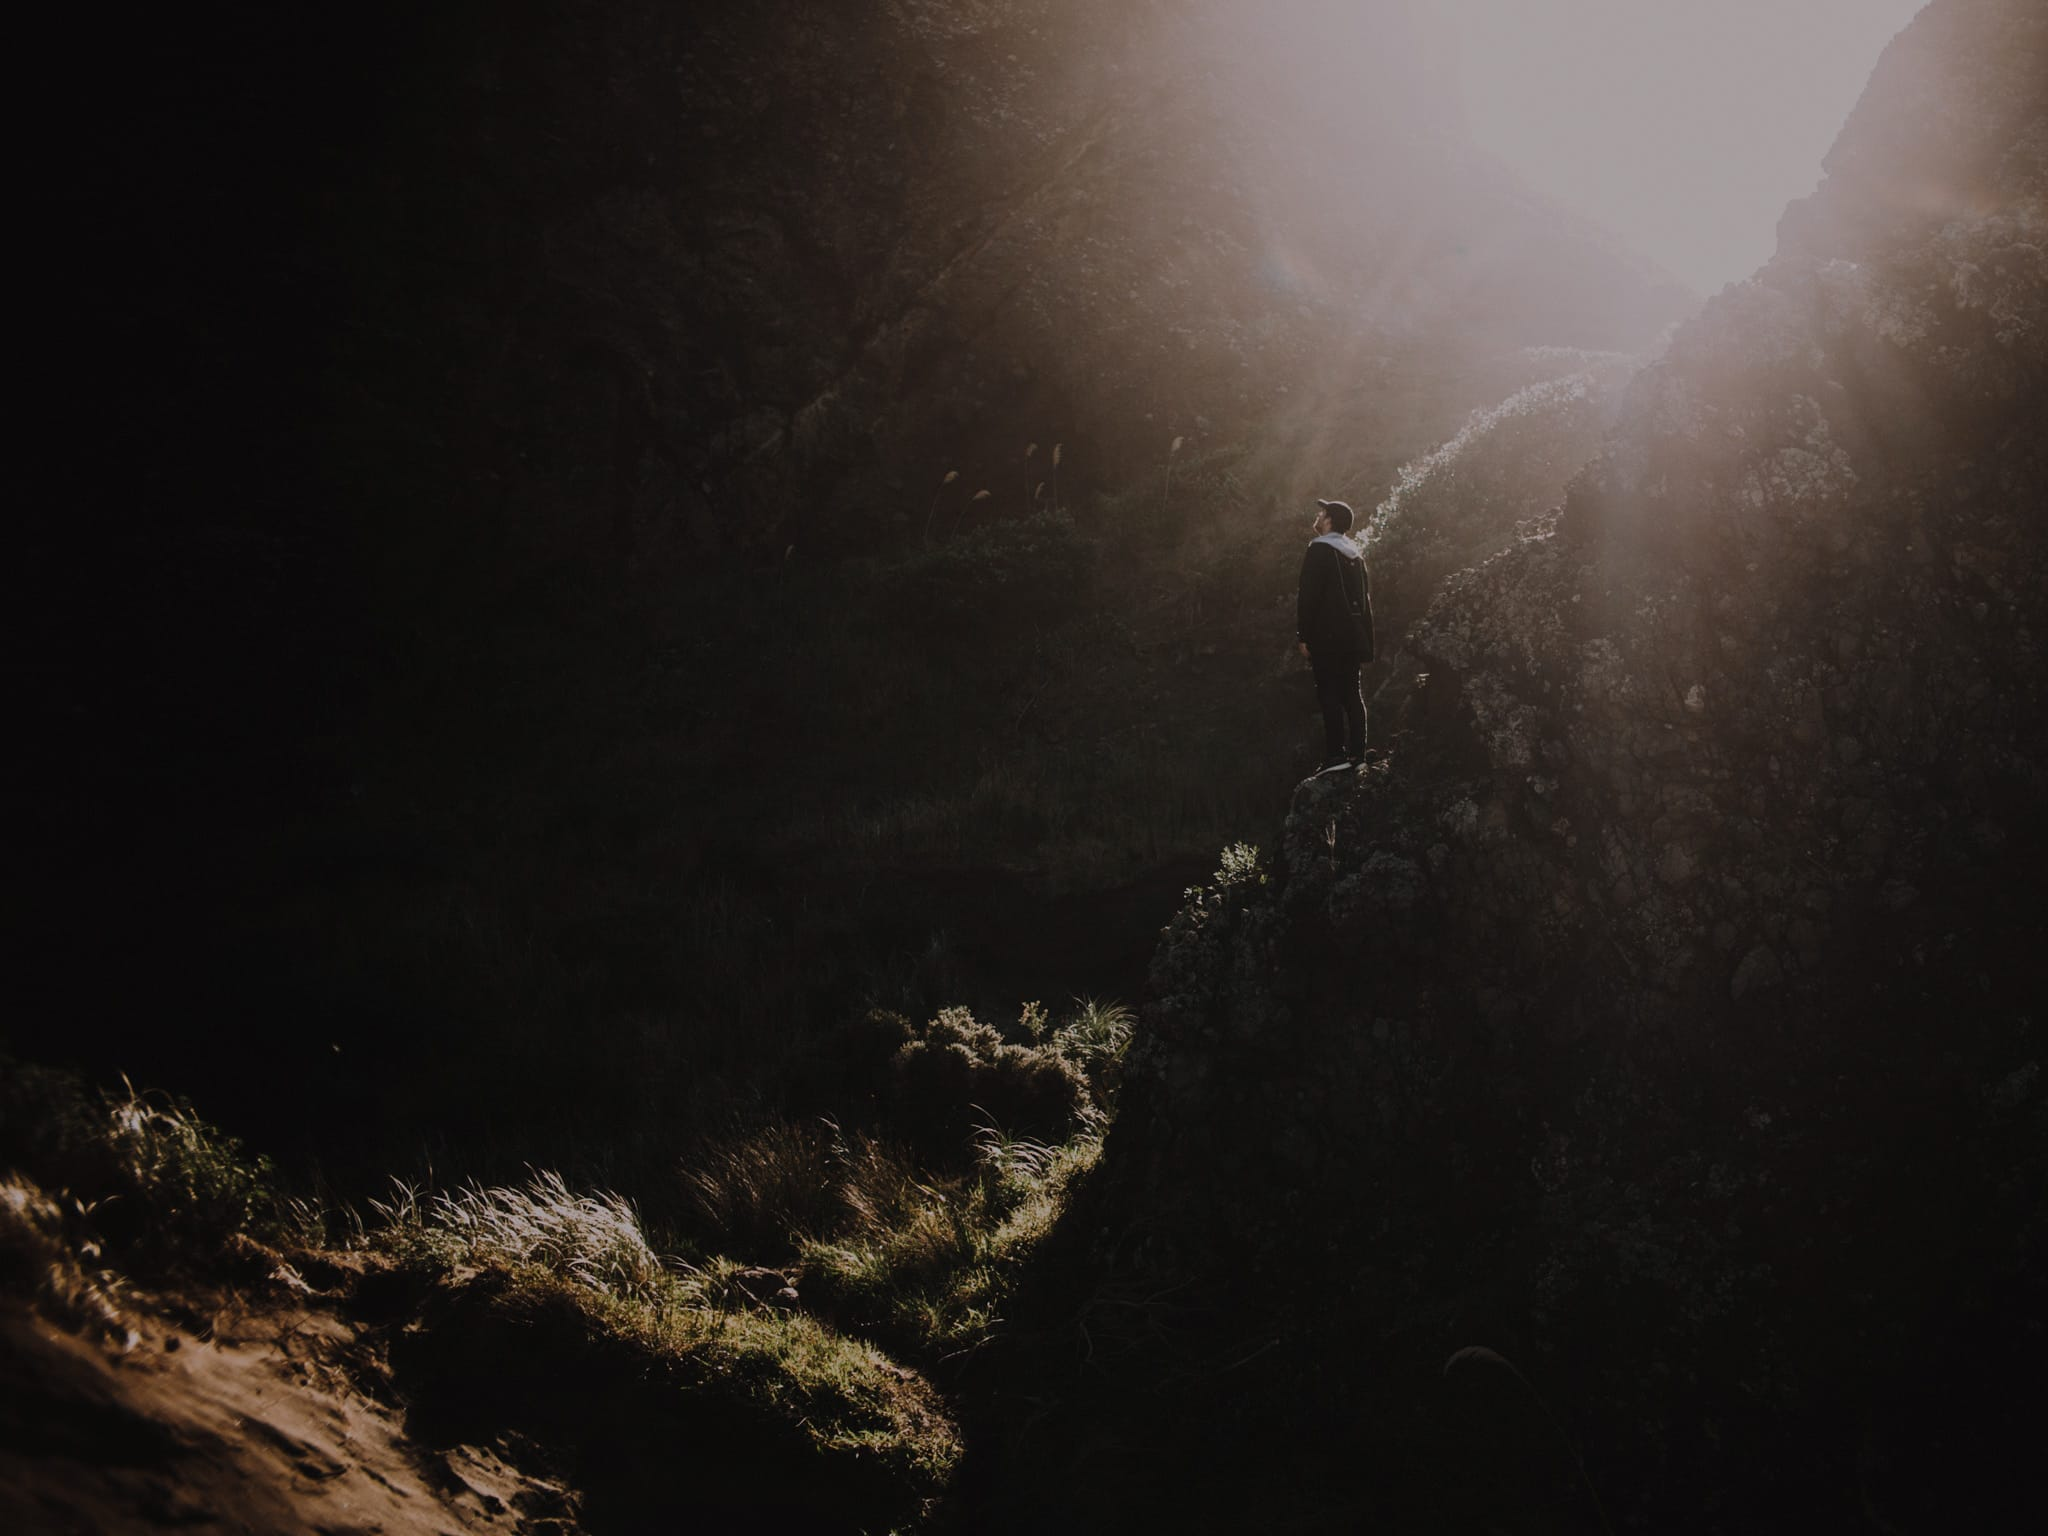 Man standing on a rock outcrop in a dark cave witha ray of light shine from above.